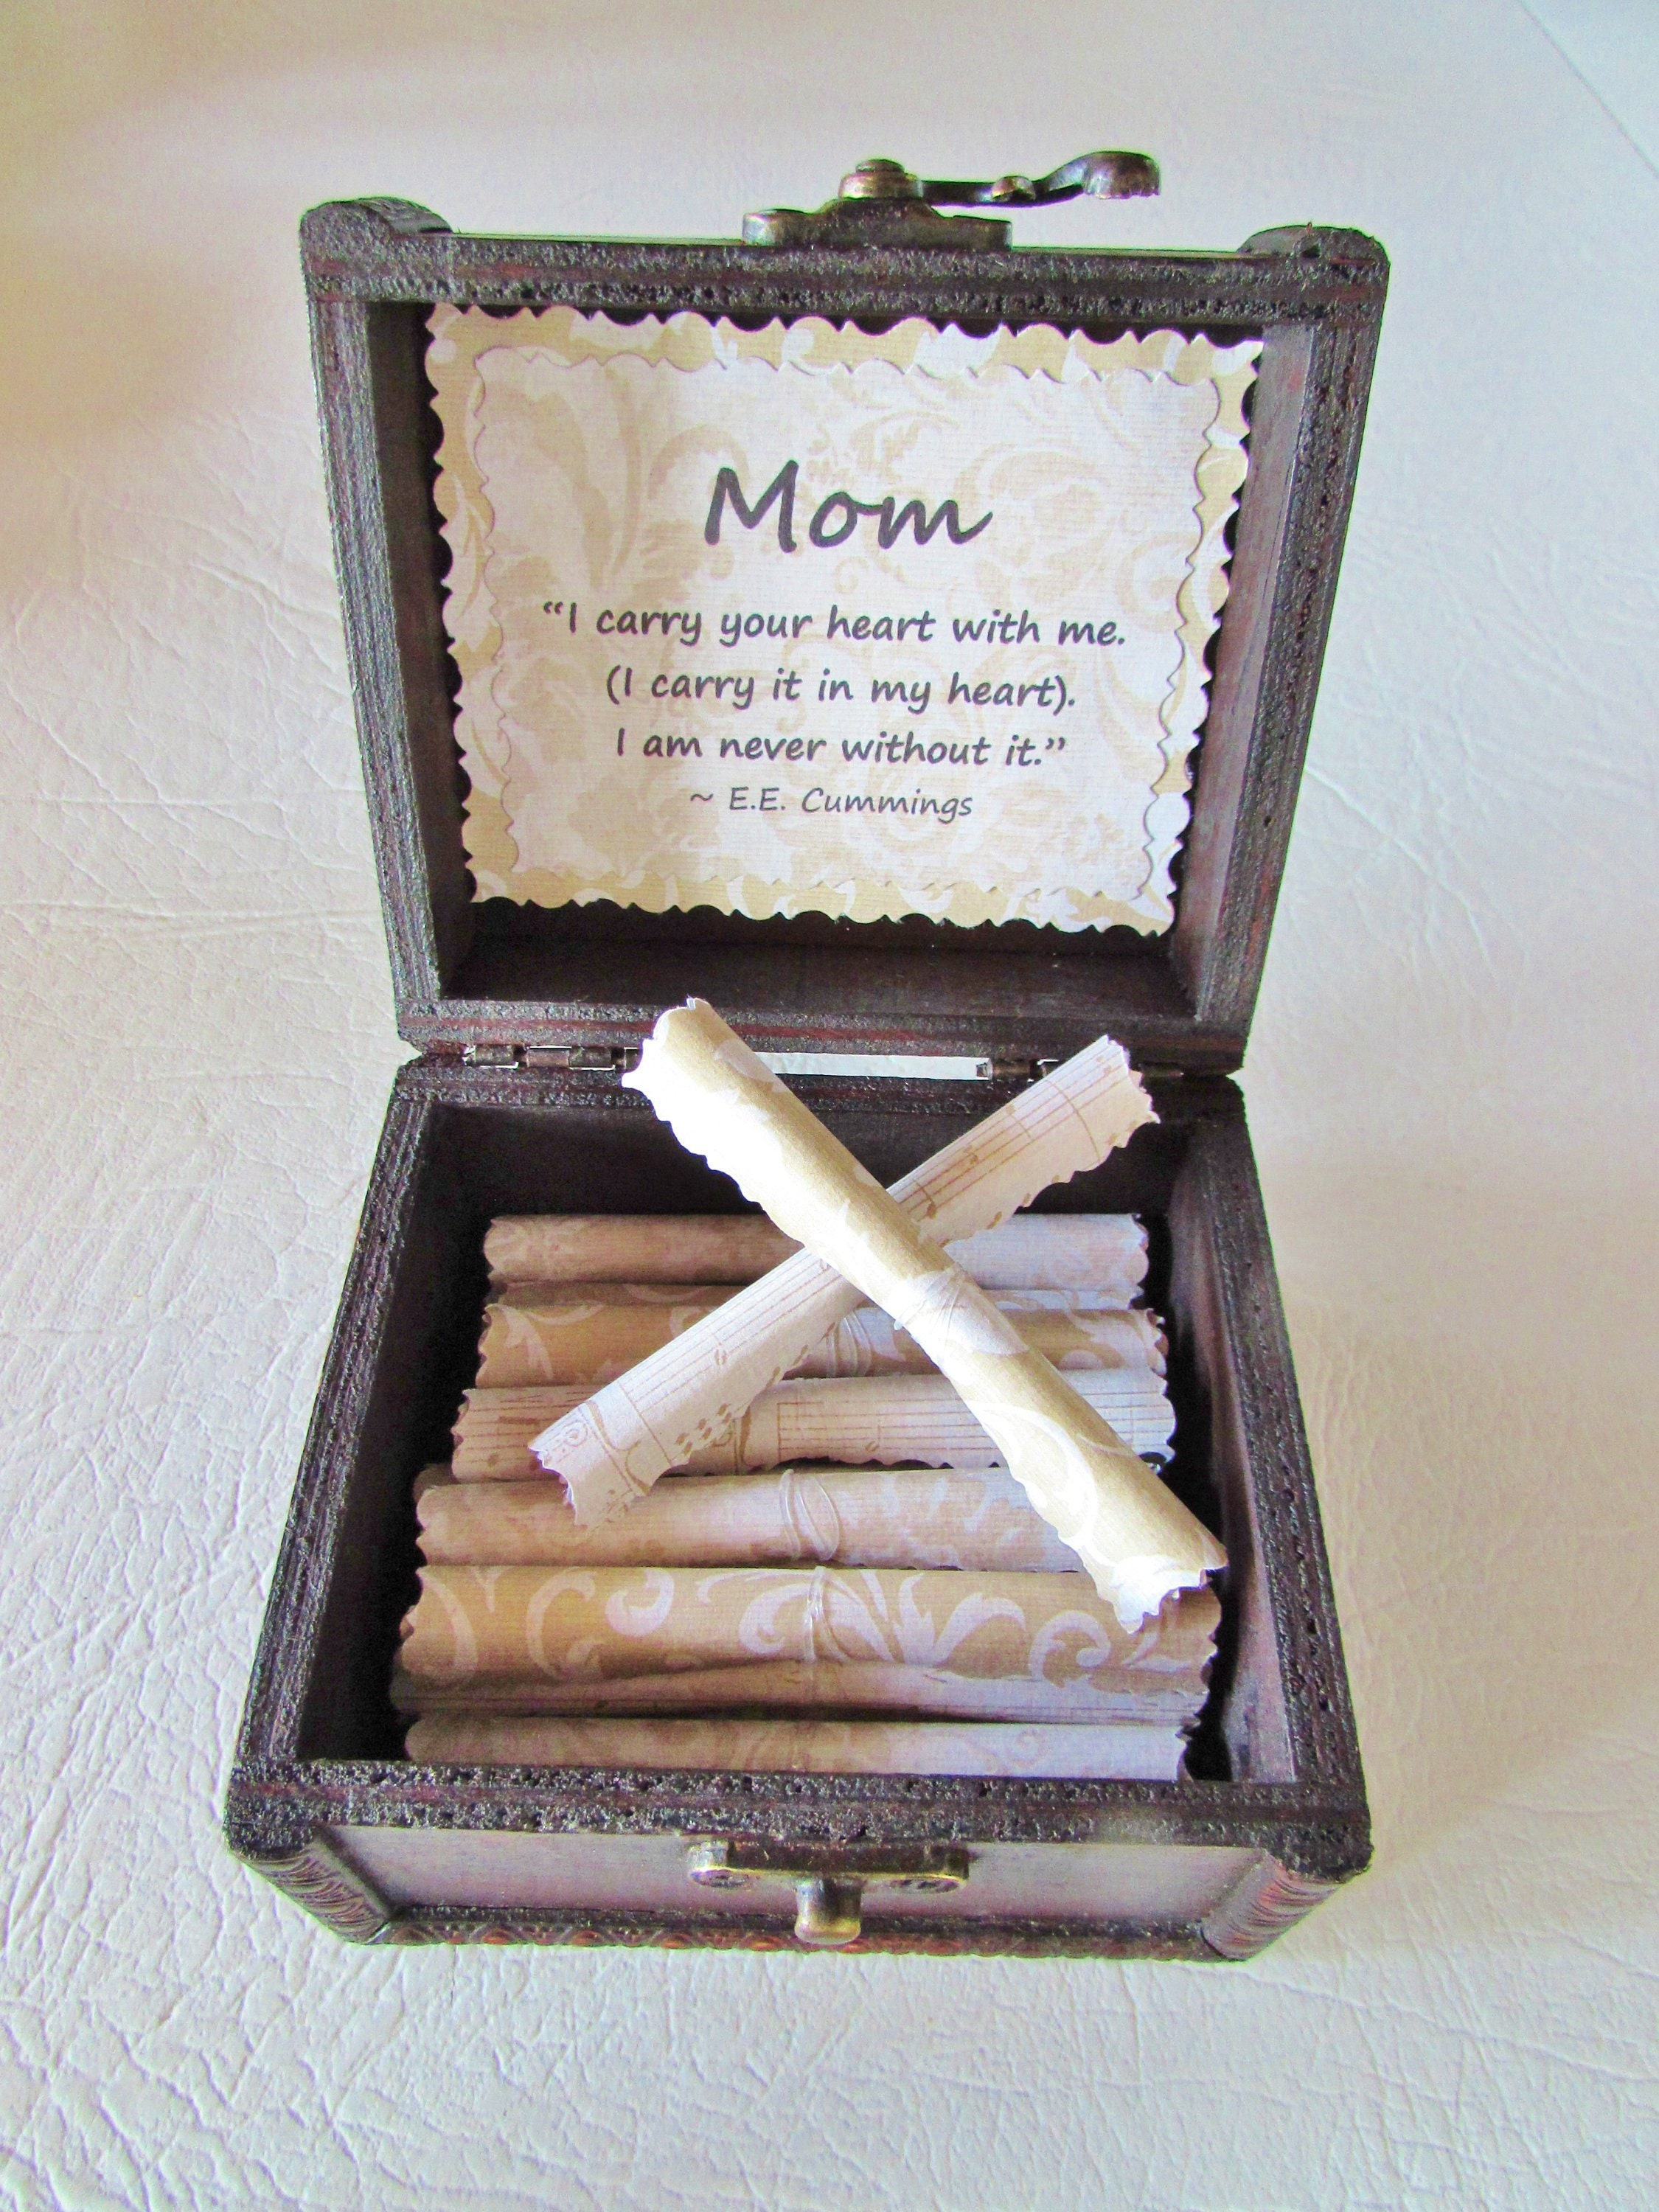 Mom Gift Sweet Quotes About Moms In A Beautiful Wood Box